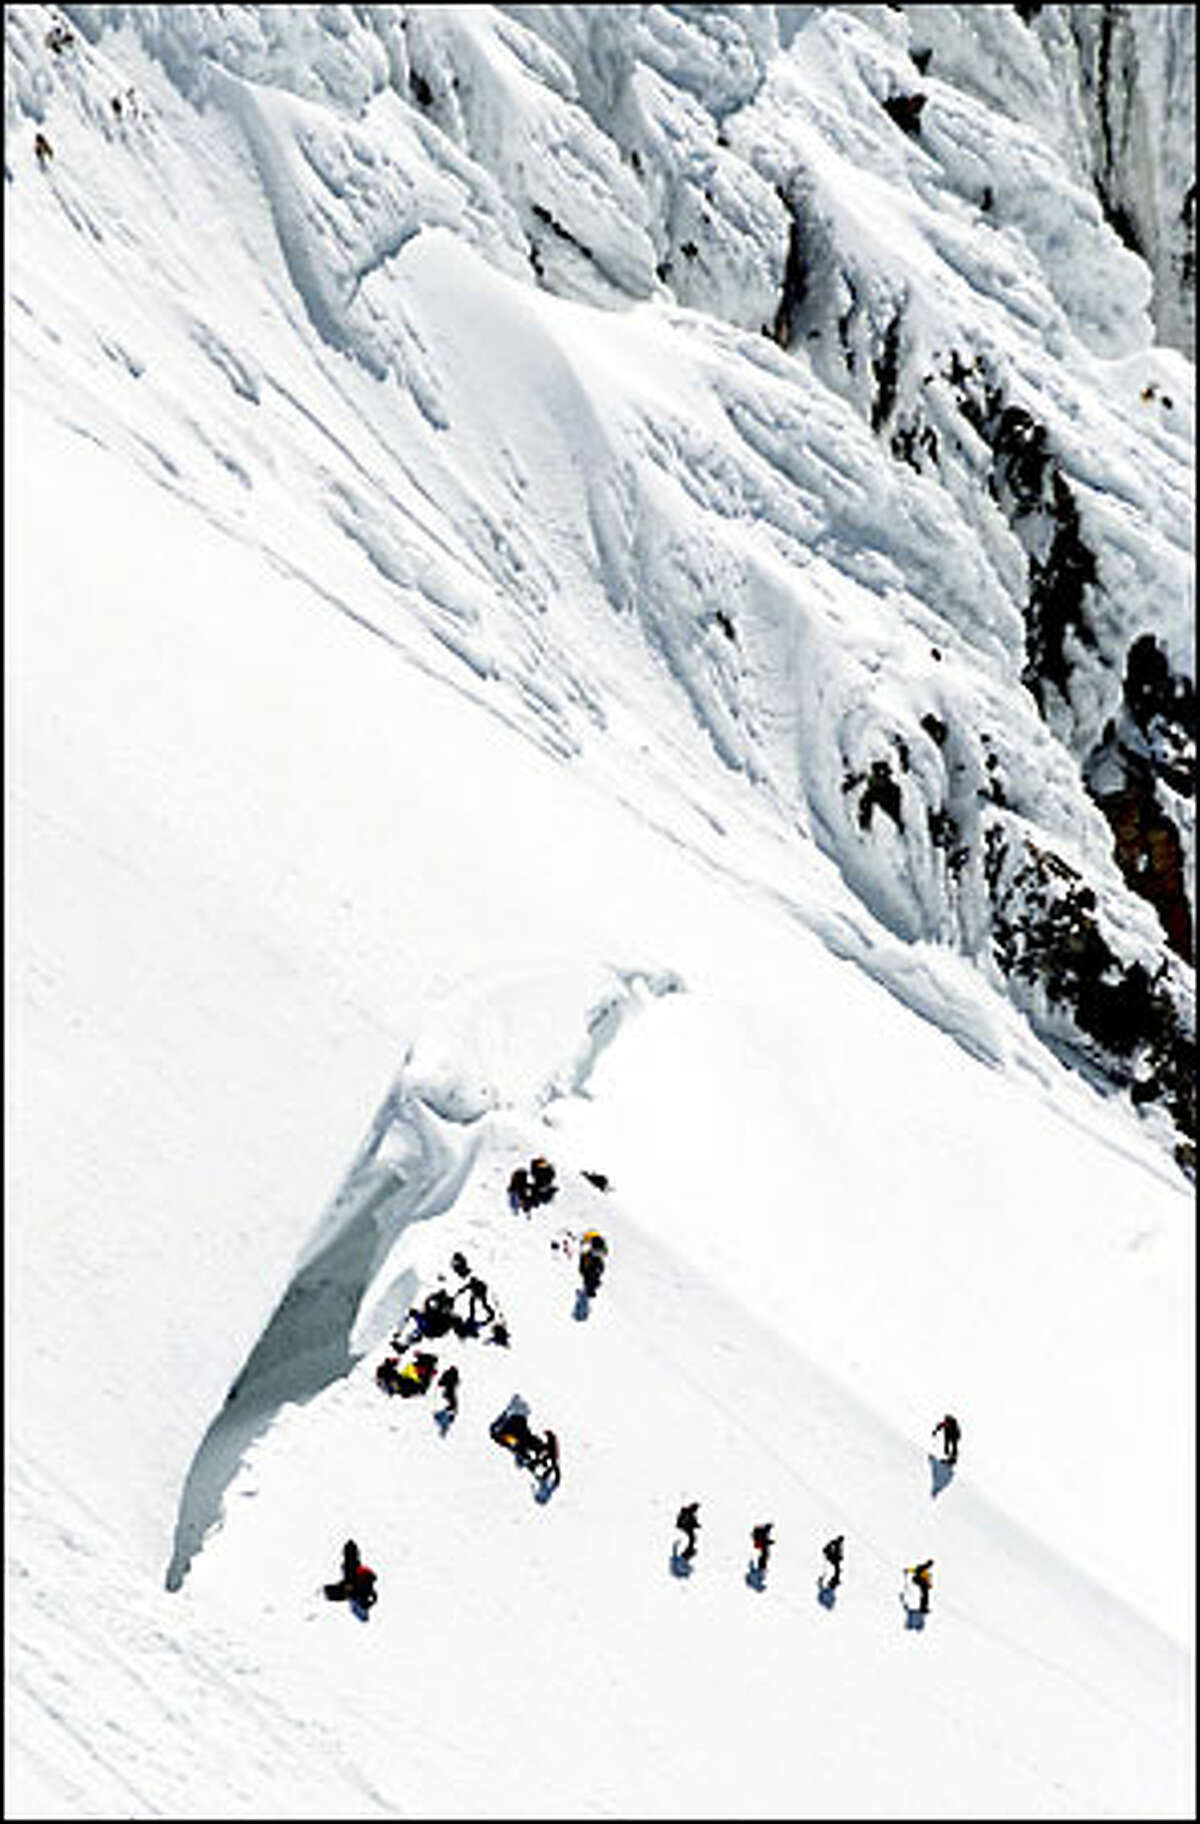 Rescuers converge near the summit of Mount Hood, where nine climbers fell into a crevasse yesterday. Three died and two others were injured.